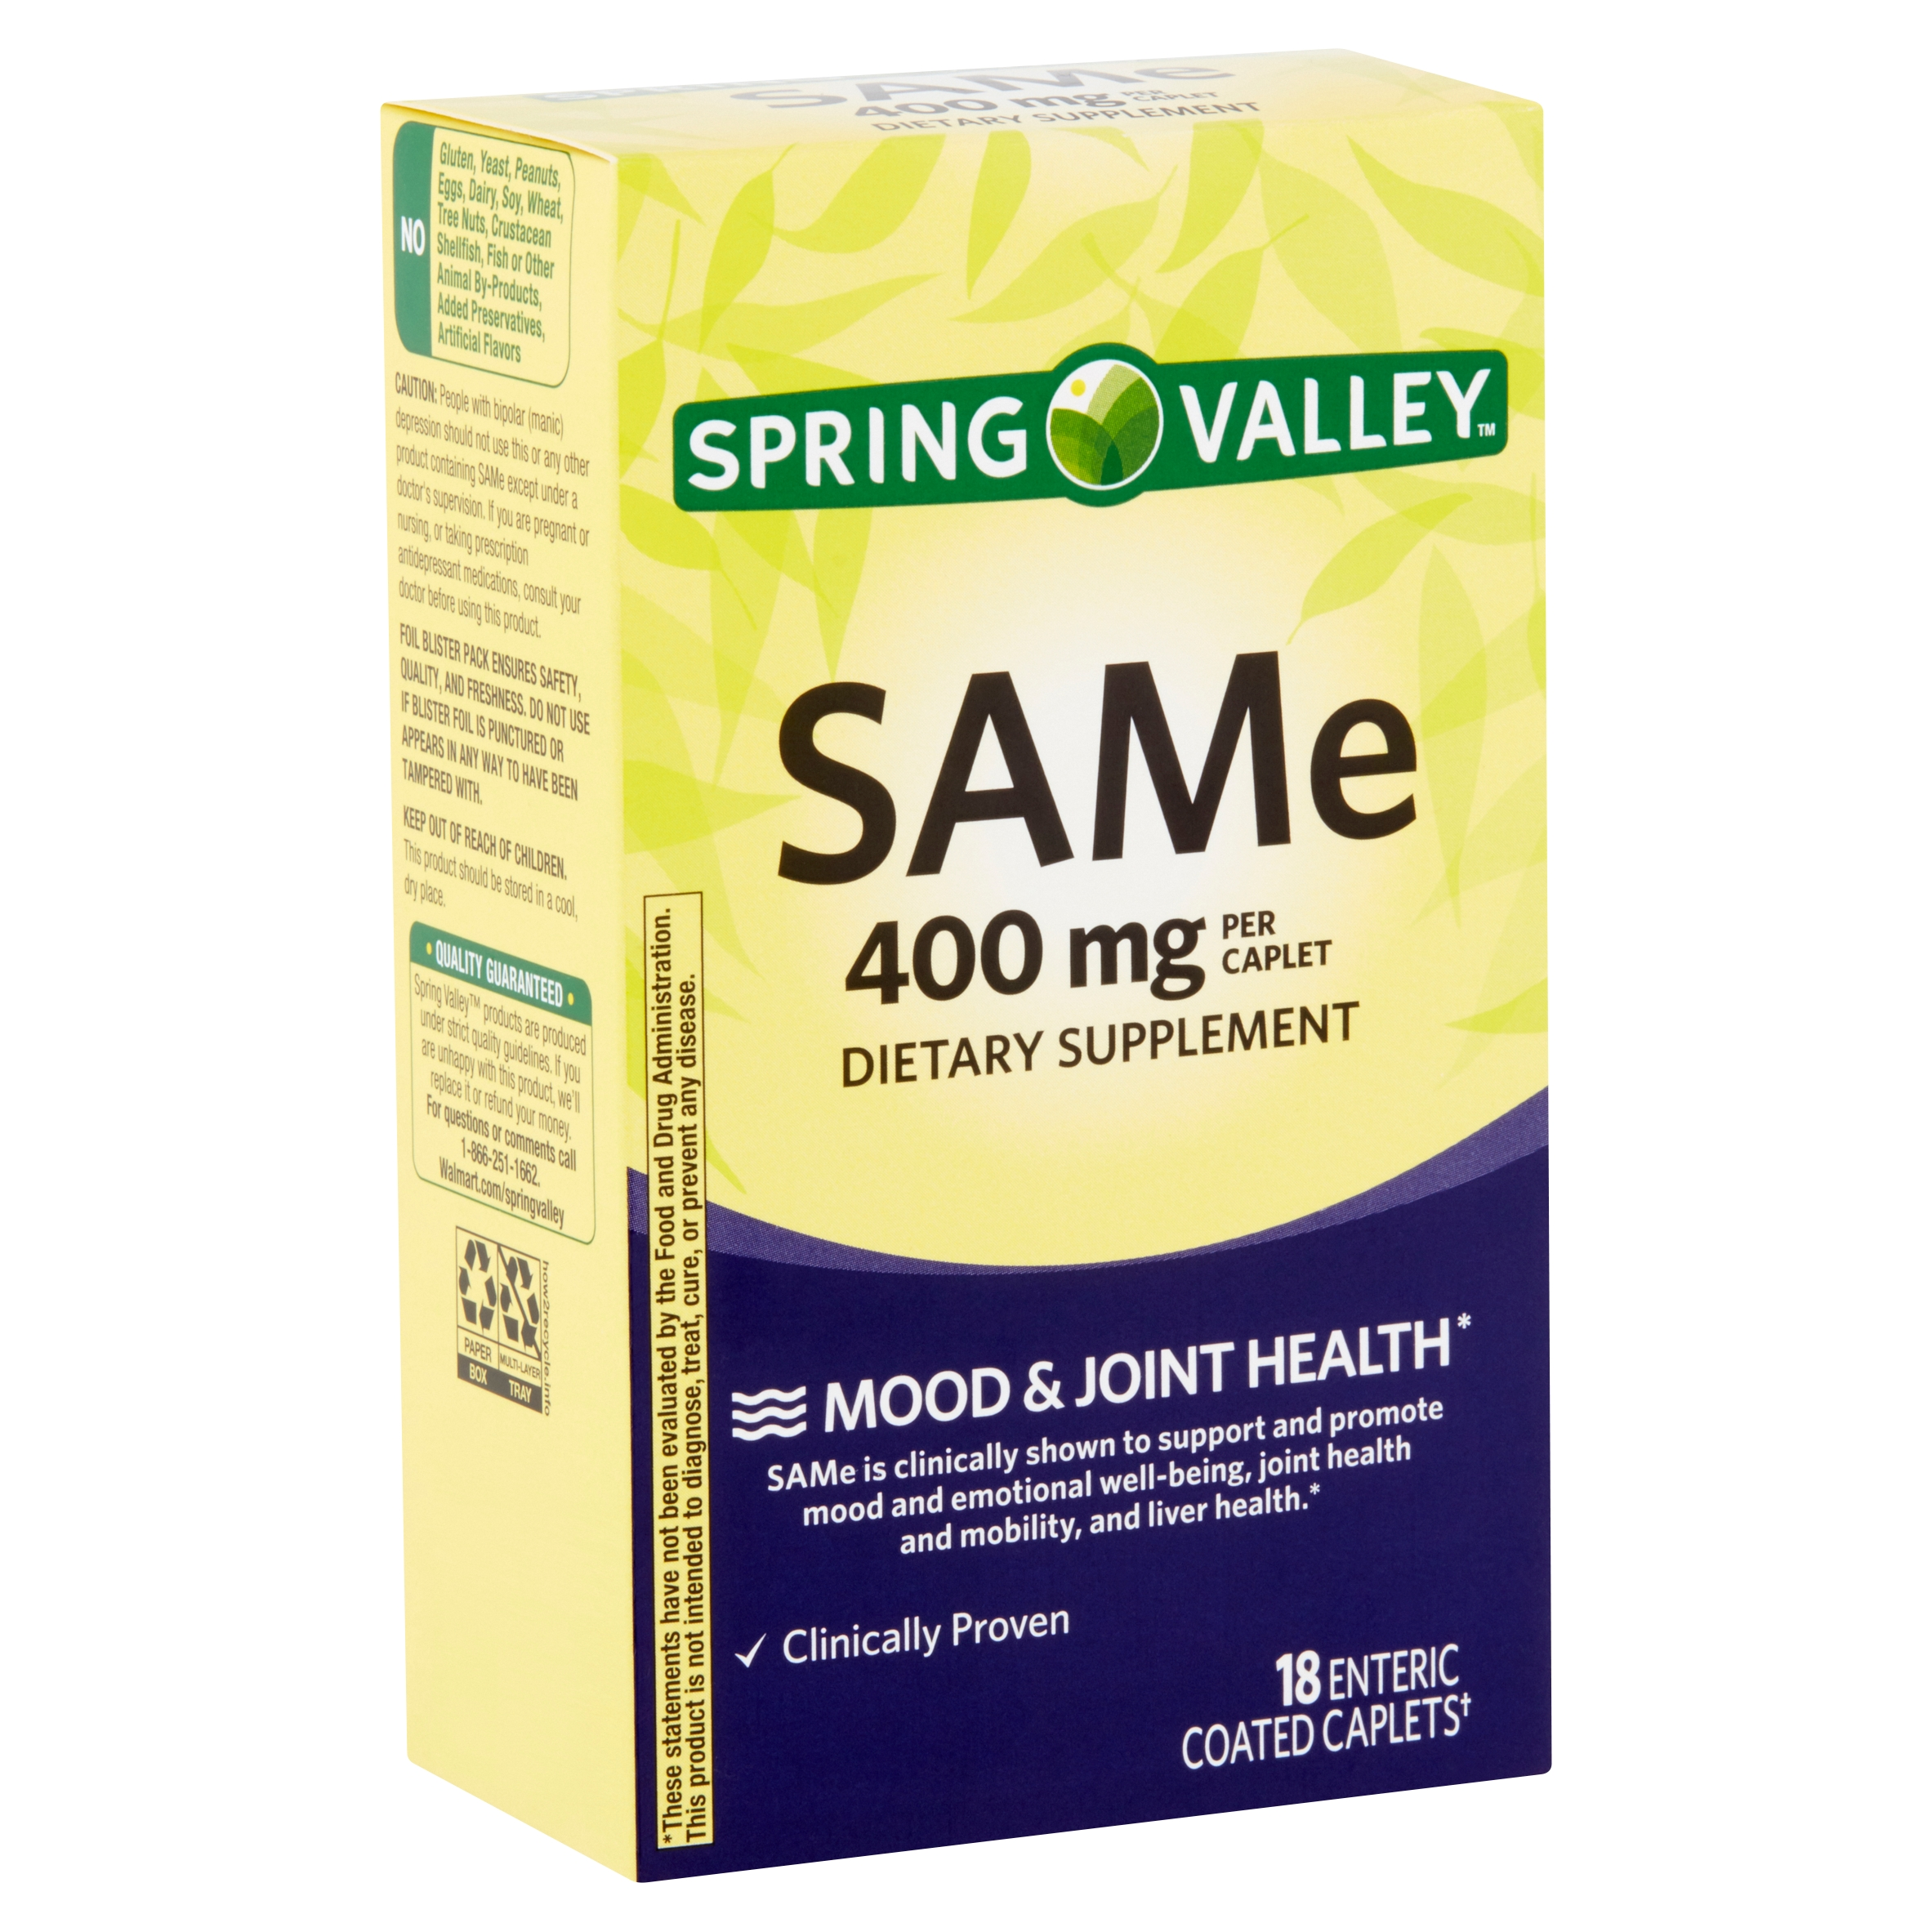 Spring Valley SAMe Enteric Coated Caplets, 400 mg, 18 count